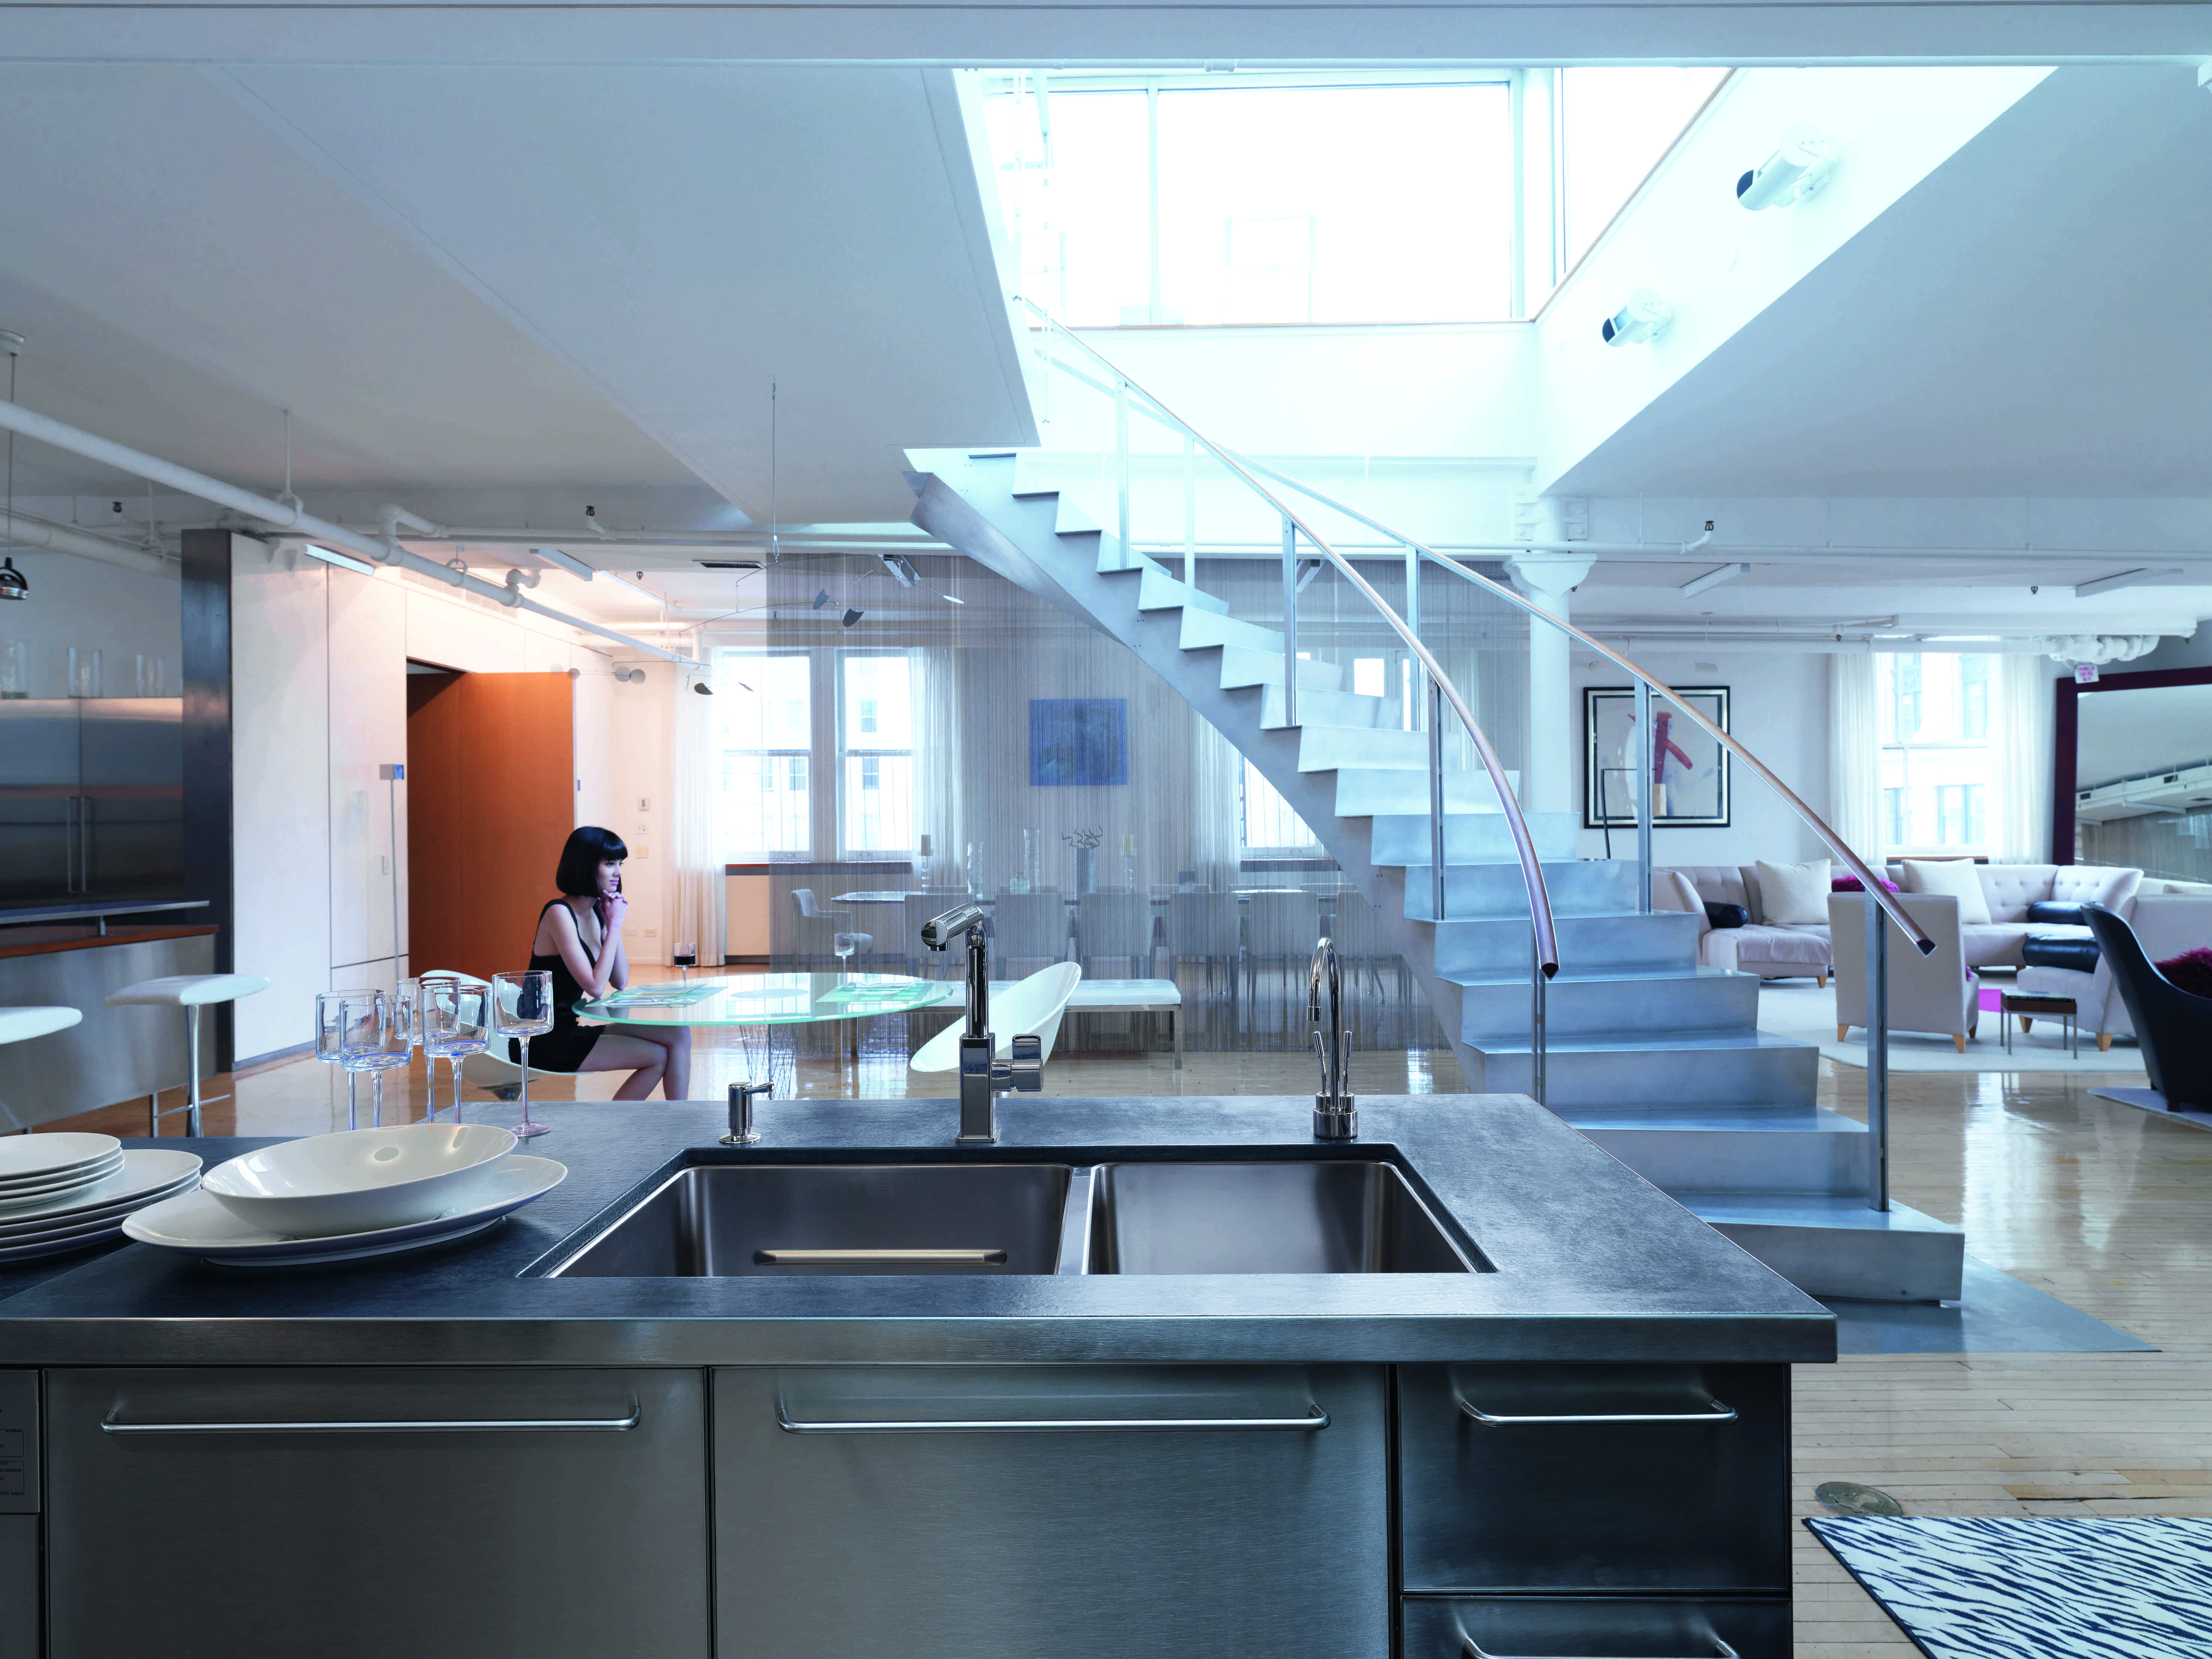 Decorex Showcases Changing Role Of Kitchen In The Home Leading Architecture Design